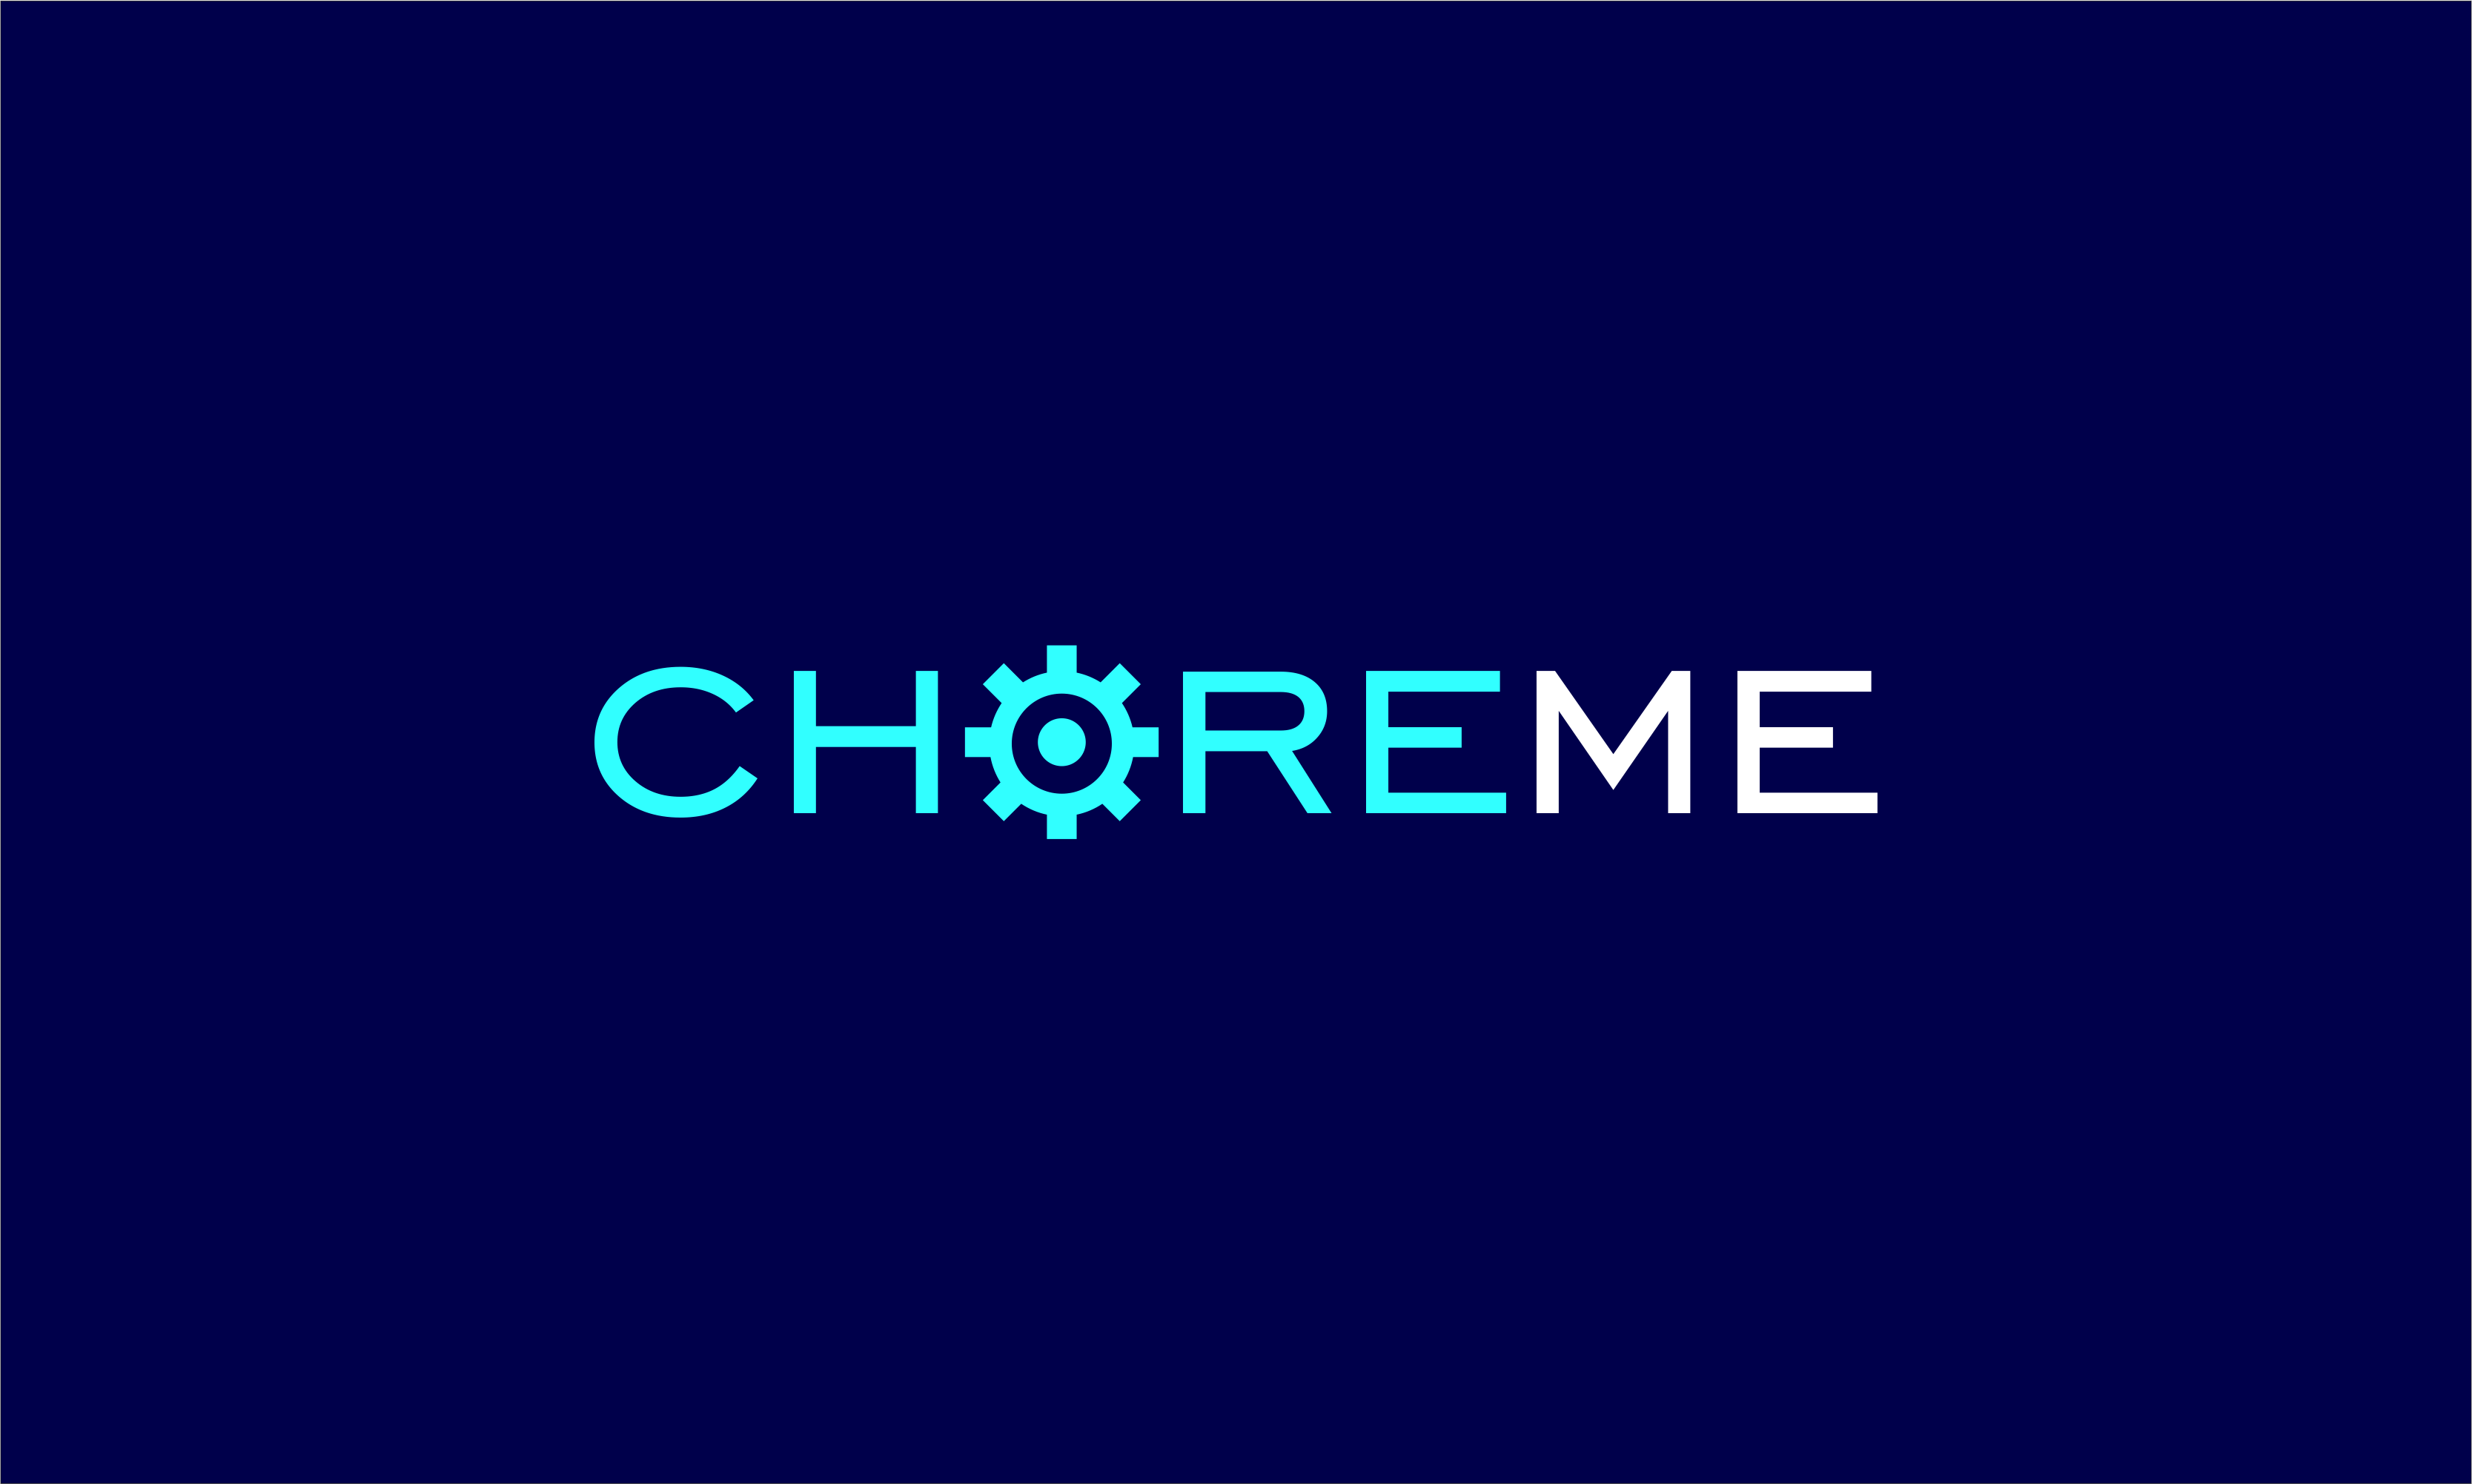 Choreme - Business company name for sale